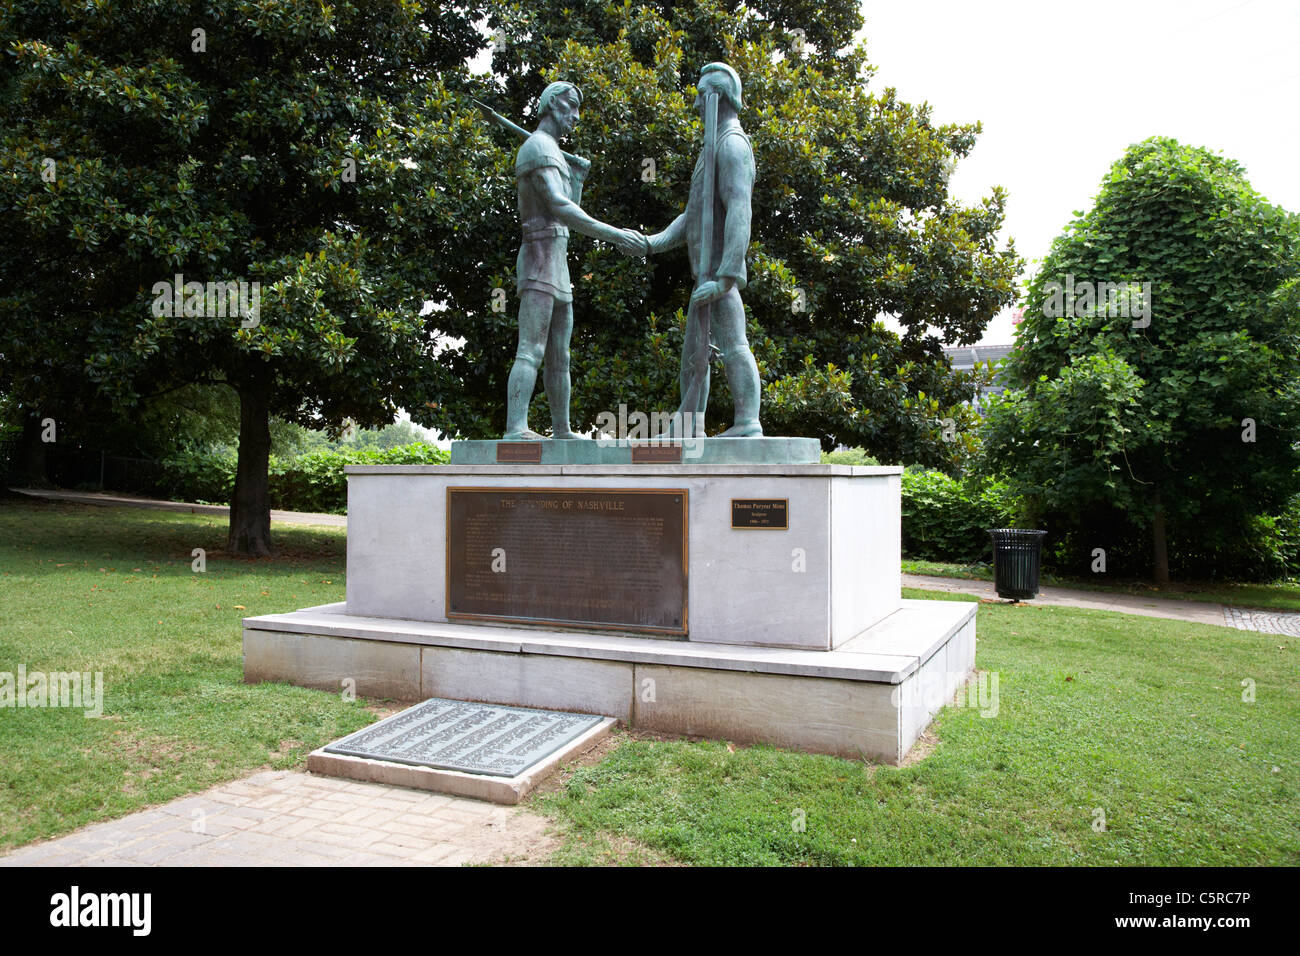 the founding of nashville sculpture featuring james robertson and john donelson Nashville Tennessee USA - Stock Image